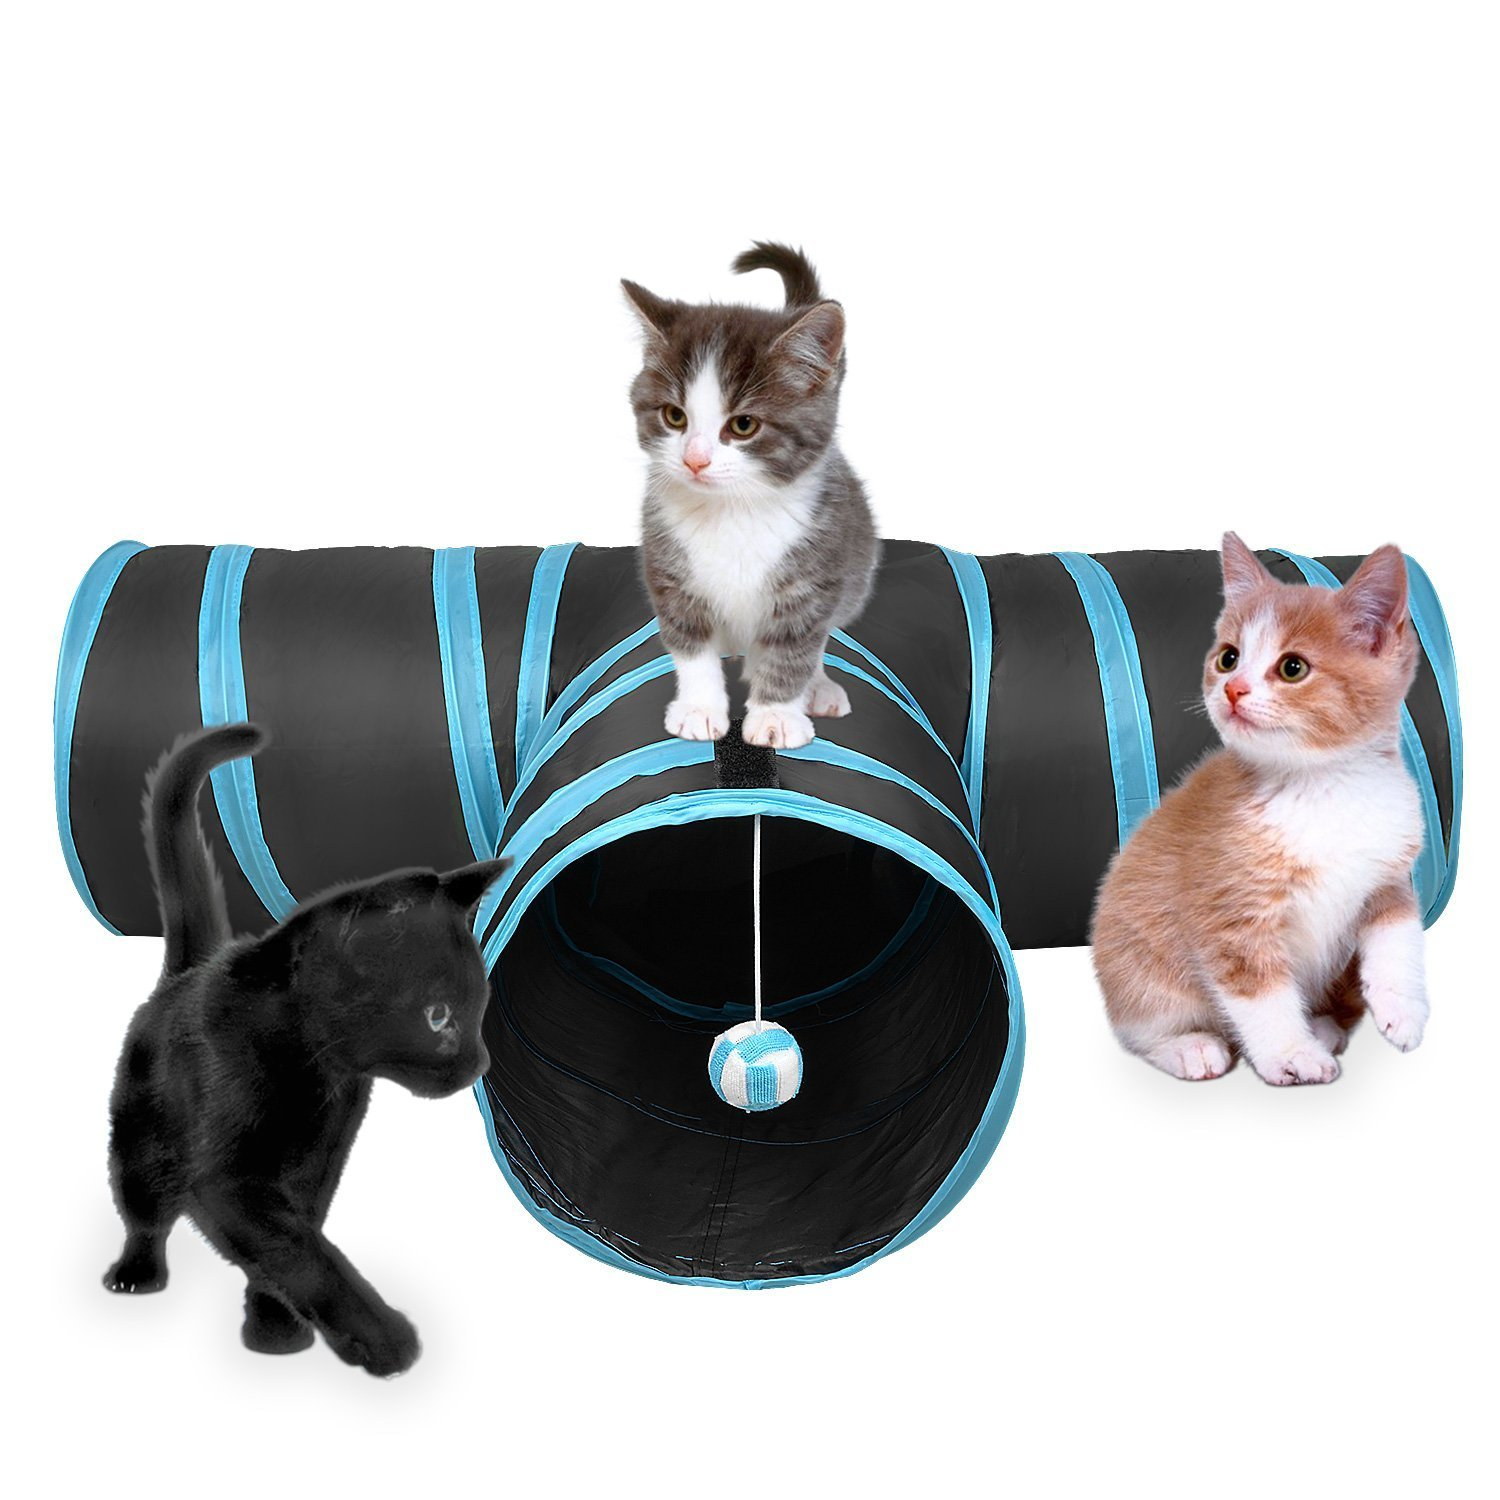 BBEART Pet Tunnels, Collapsible 3 Ways Play Toy Tunnel with Ball Tube Fun for Cat Kitten Puppy Rabbit Small Pets etc (Blue) by BBEART (Image #1)